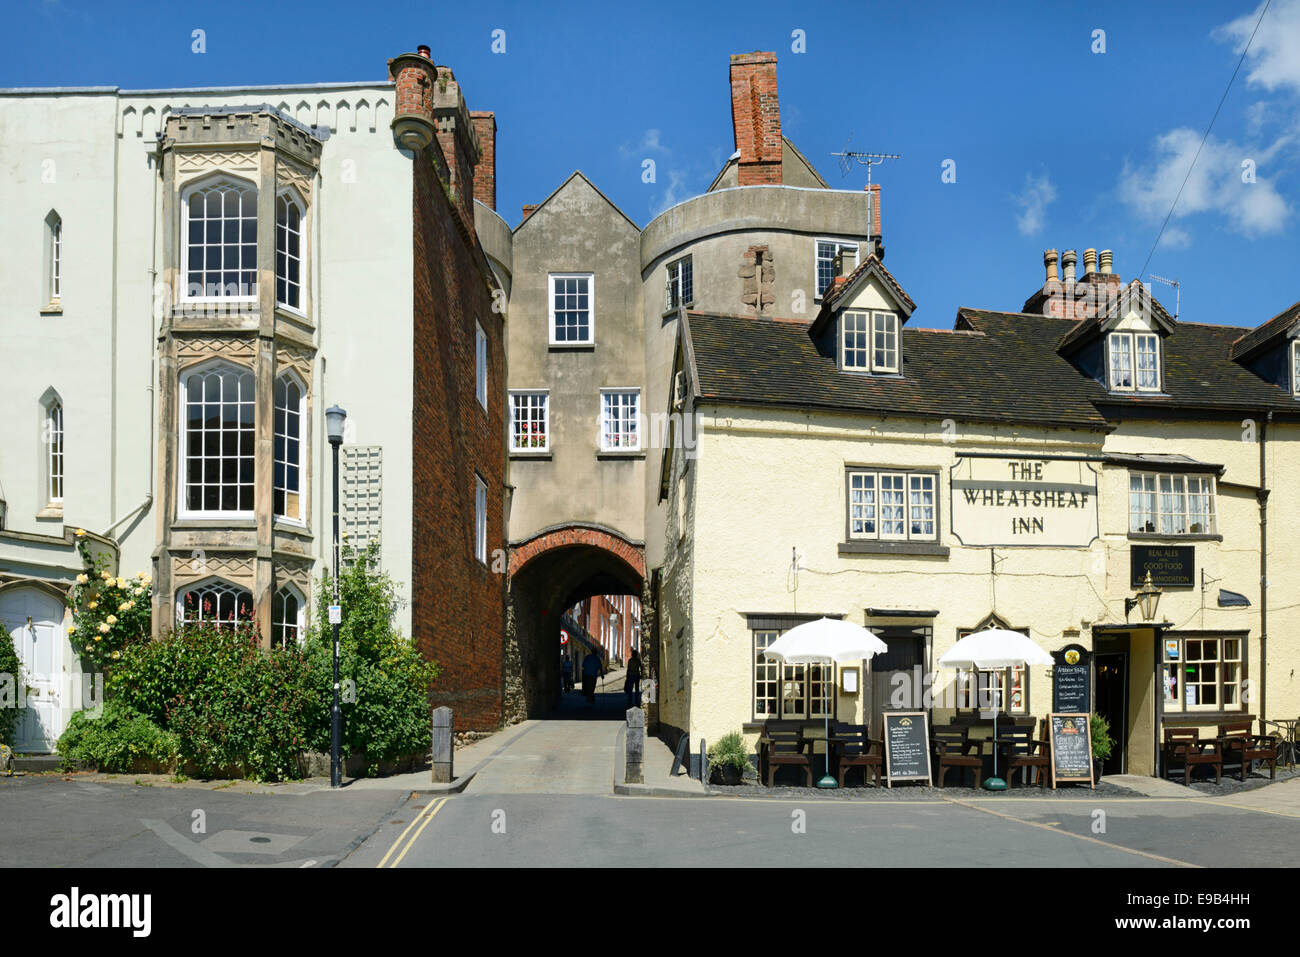 The 13th century Broad Gate, the only surviving medieval gate, Ludlow, Shropshire, England, United Kingdom. Europe - Stock Image